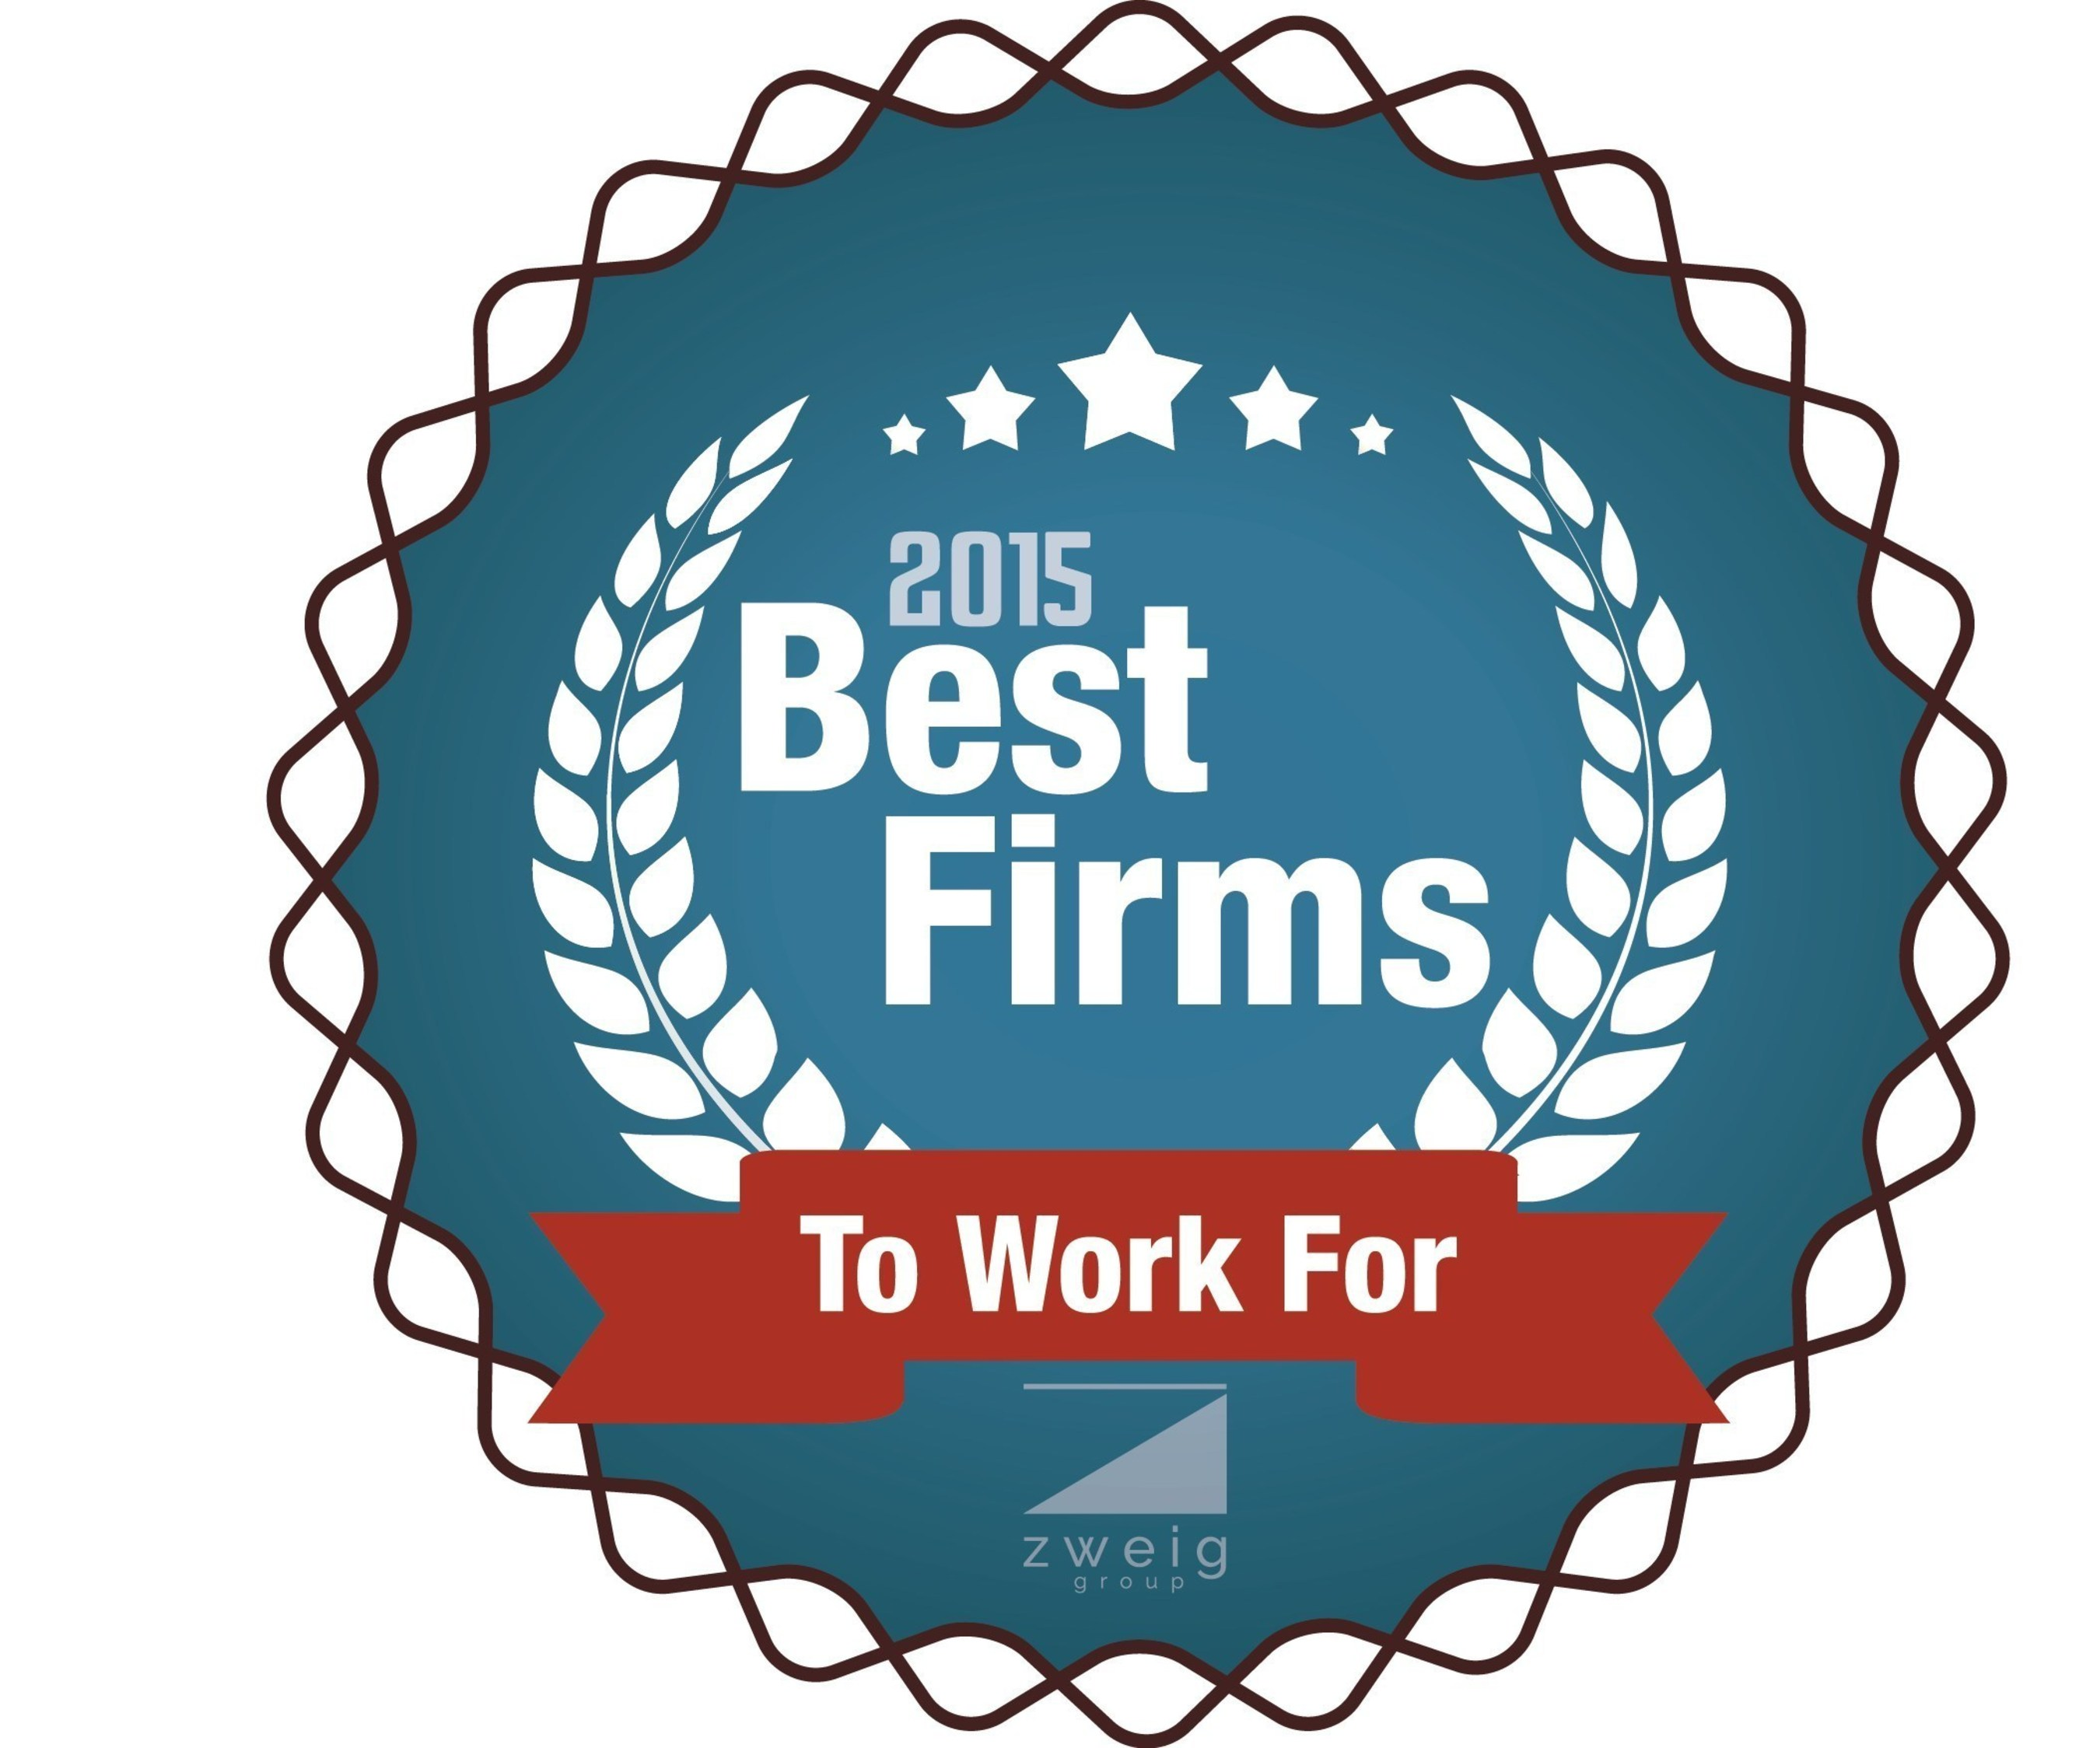 Zweig Group Announces 2015 Best Firms To Work For List